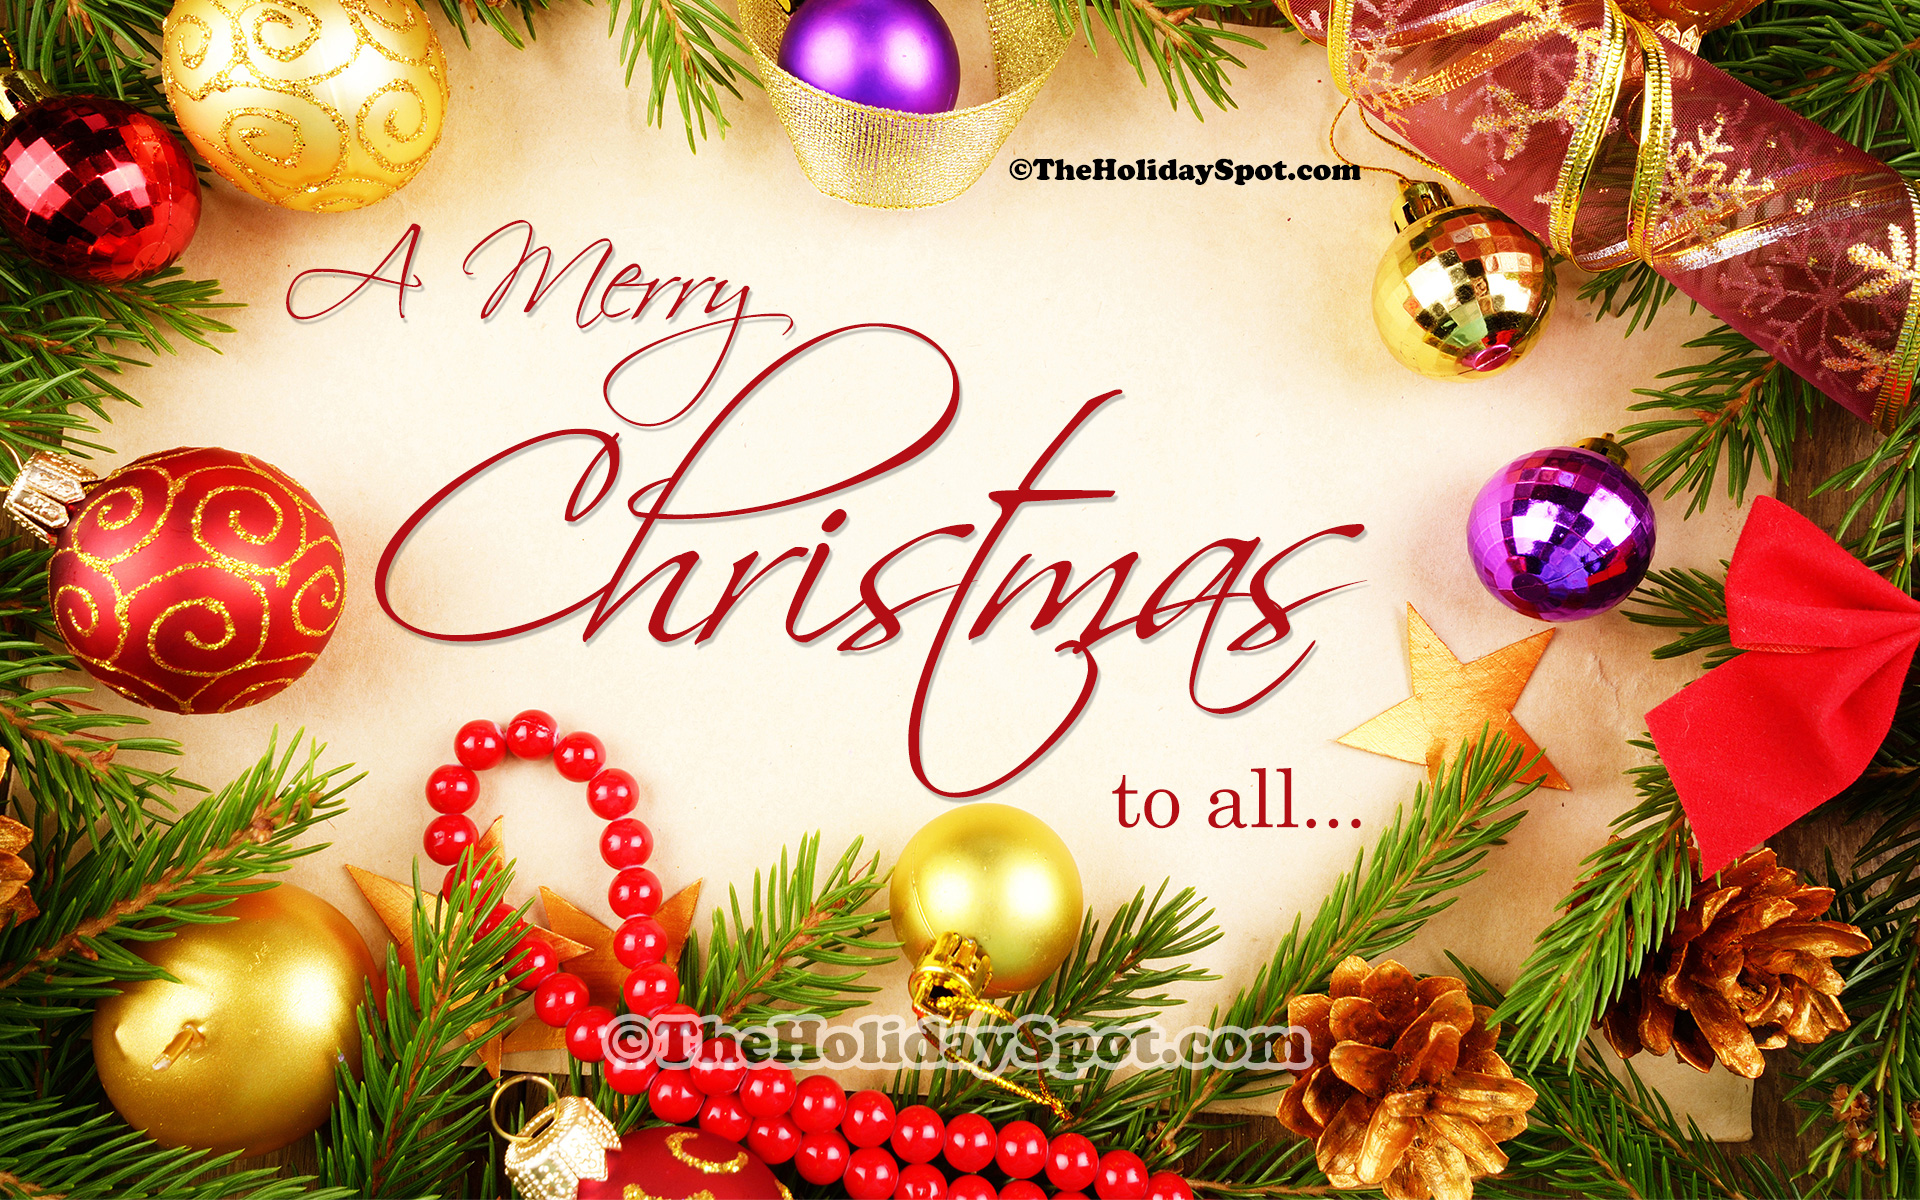 Free Christmas wallpapers   Download HD wallpaper A high resolution Christmas wallpaper of a Christmas Wish